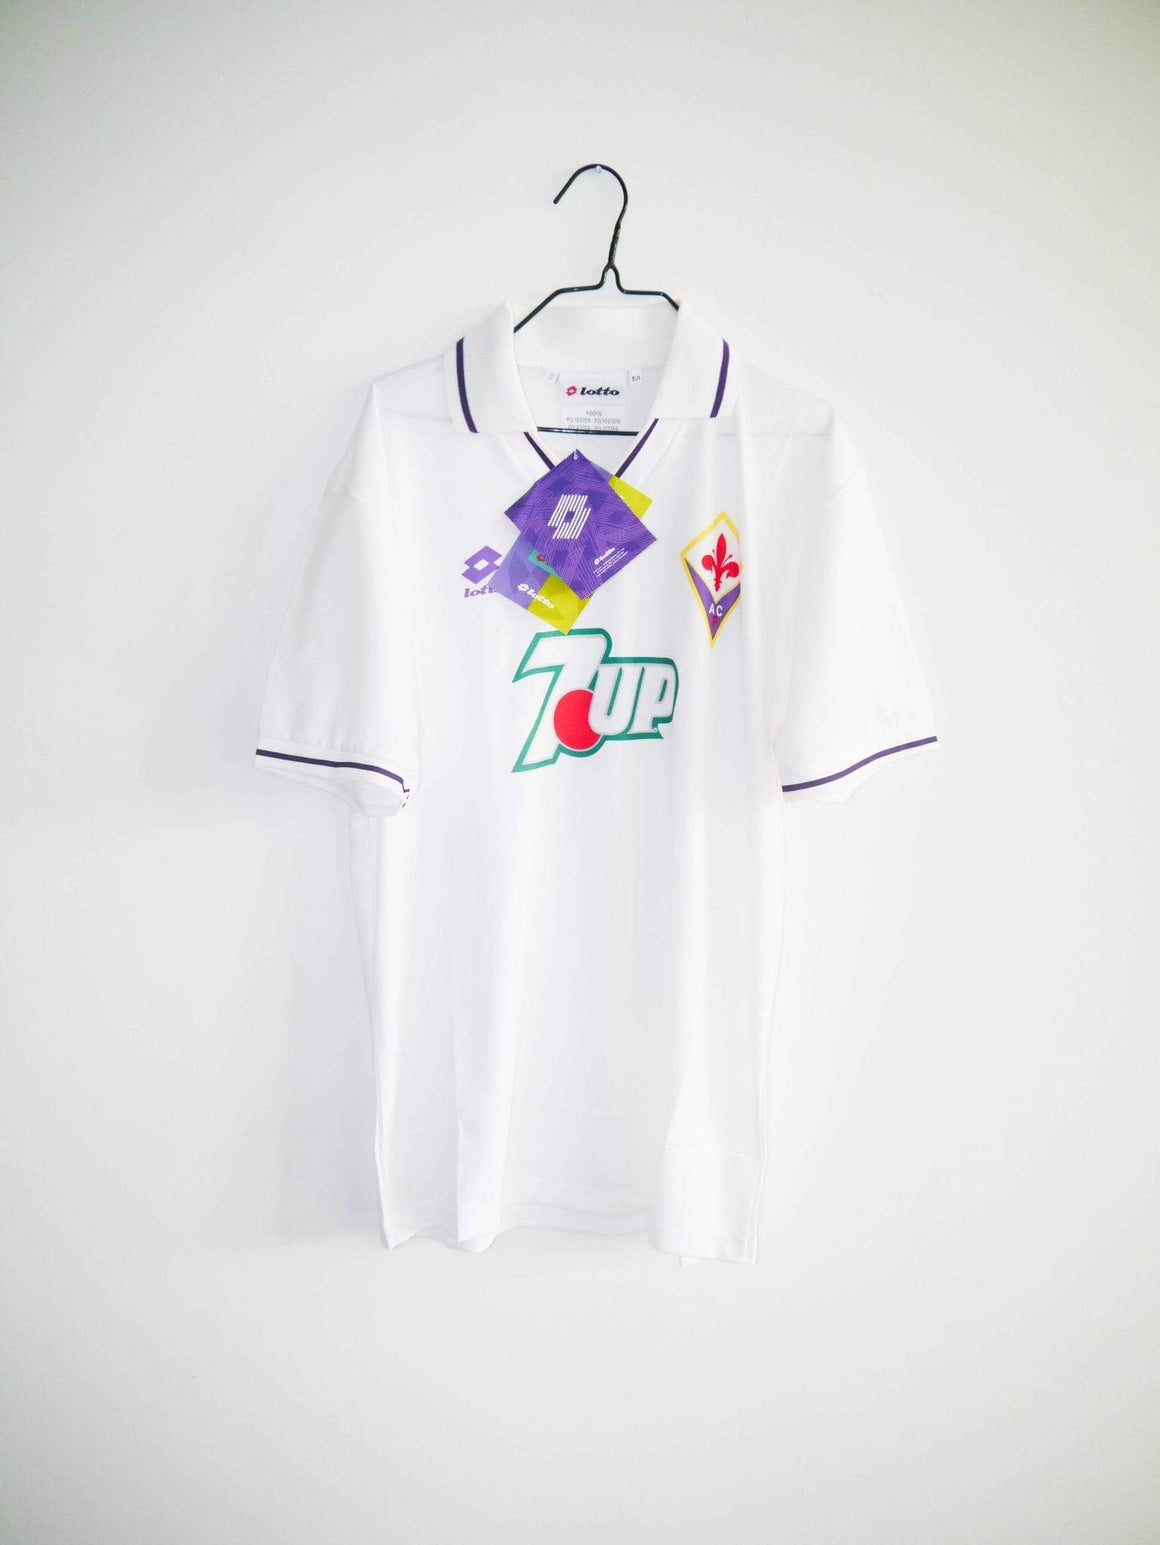 1992-93 Fiorentina away shirt - Football Shirt Collective